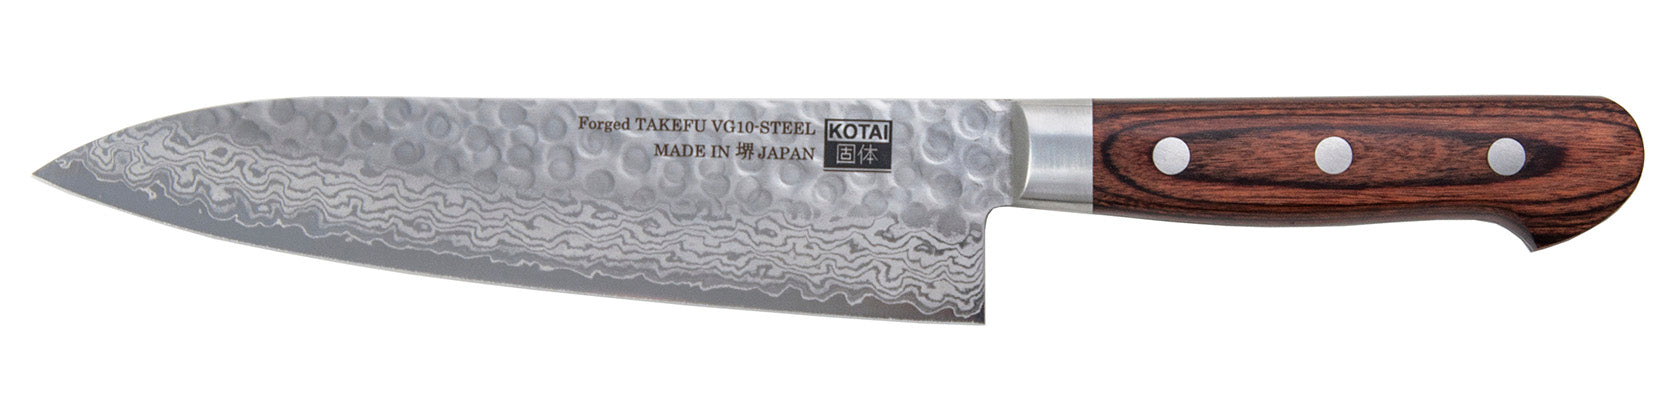 Gyuto Chef Knife - VG10 Damascus Hammered Blade